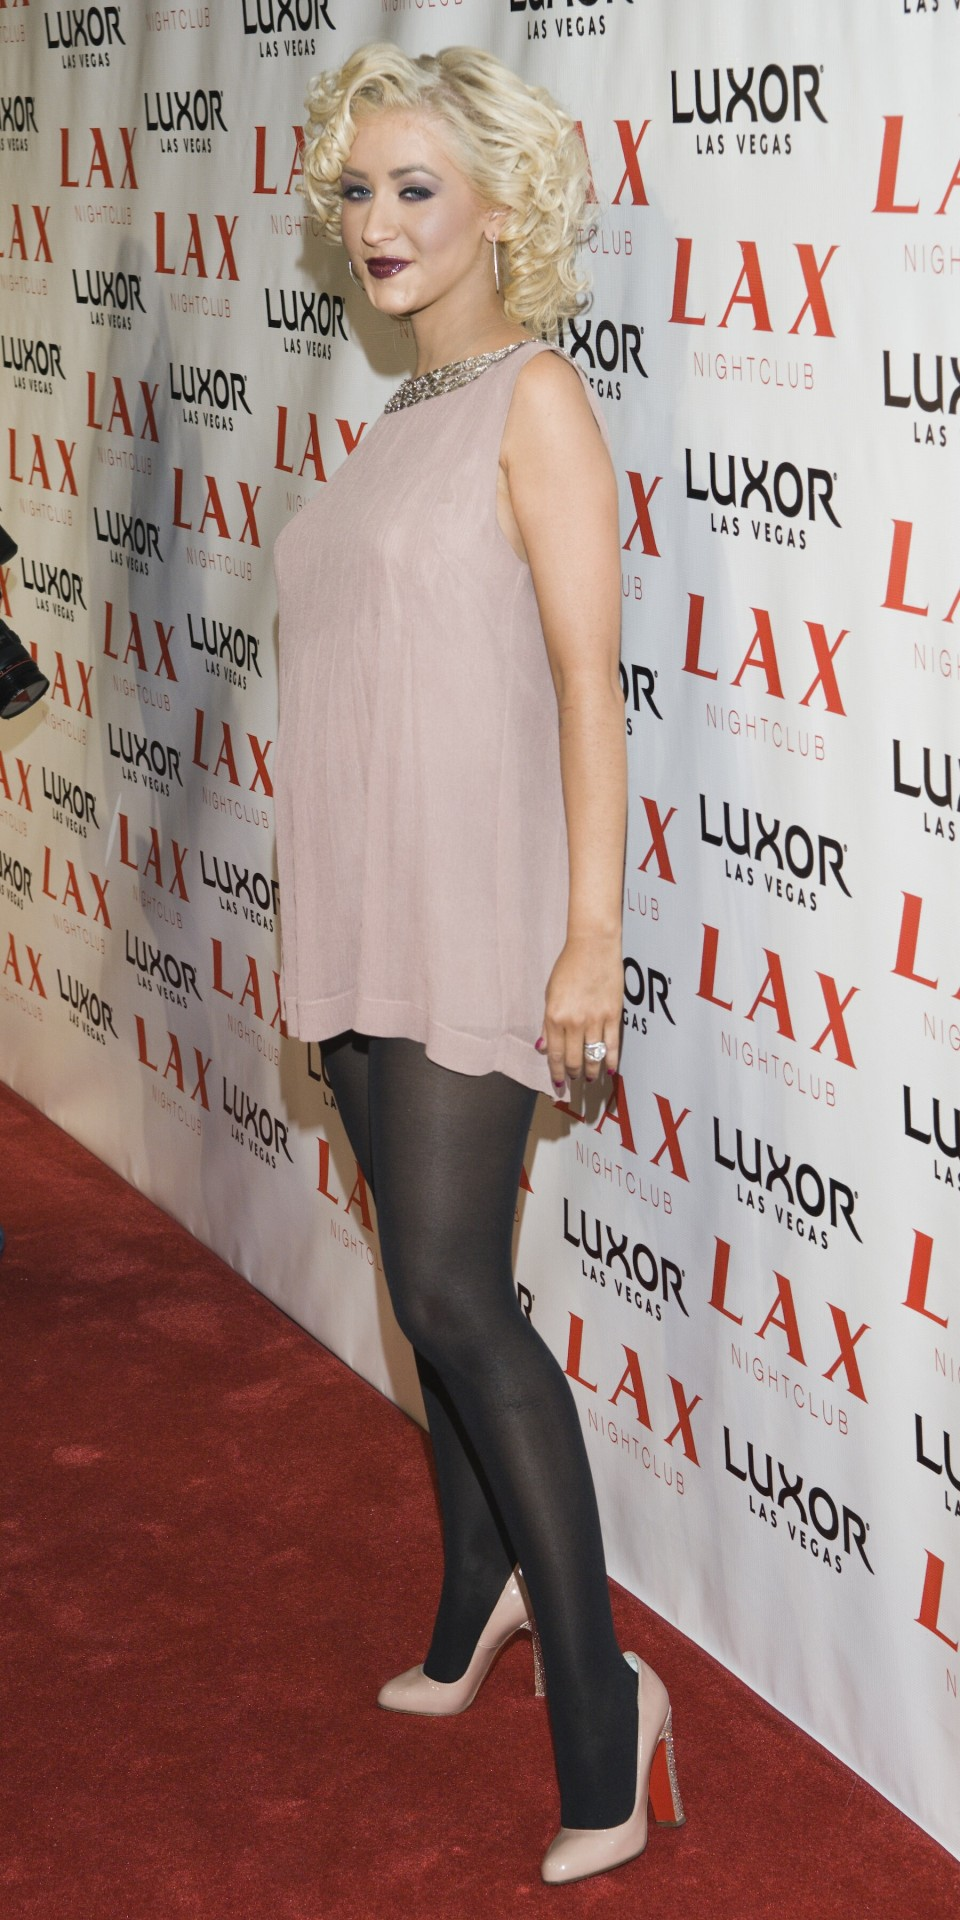 Christina Aguilera in a very short dress and hosiery!